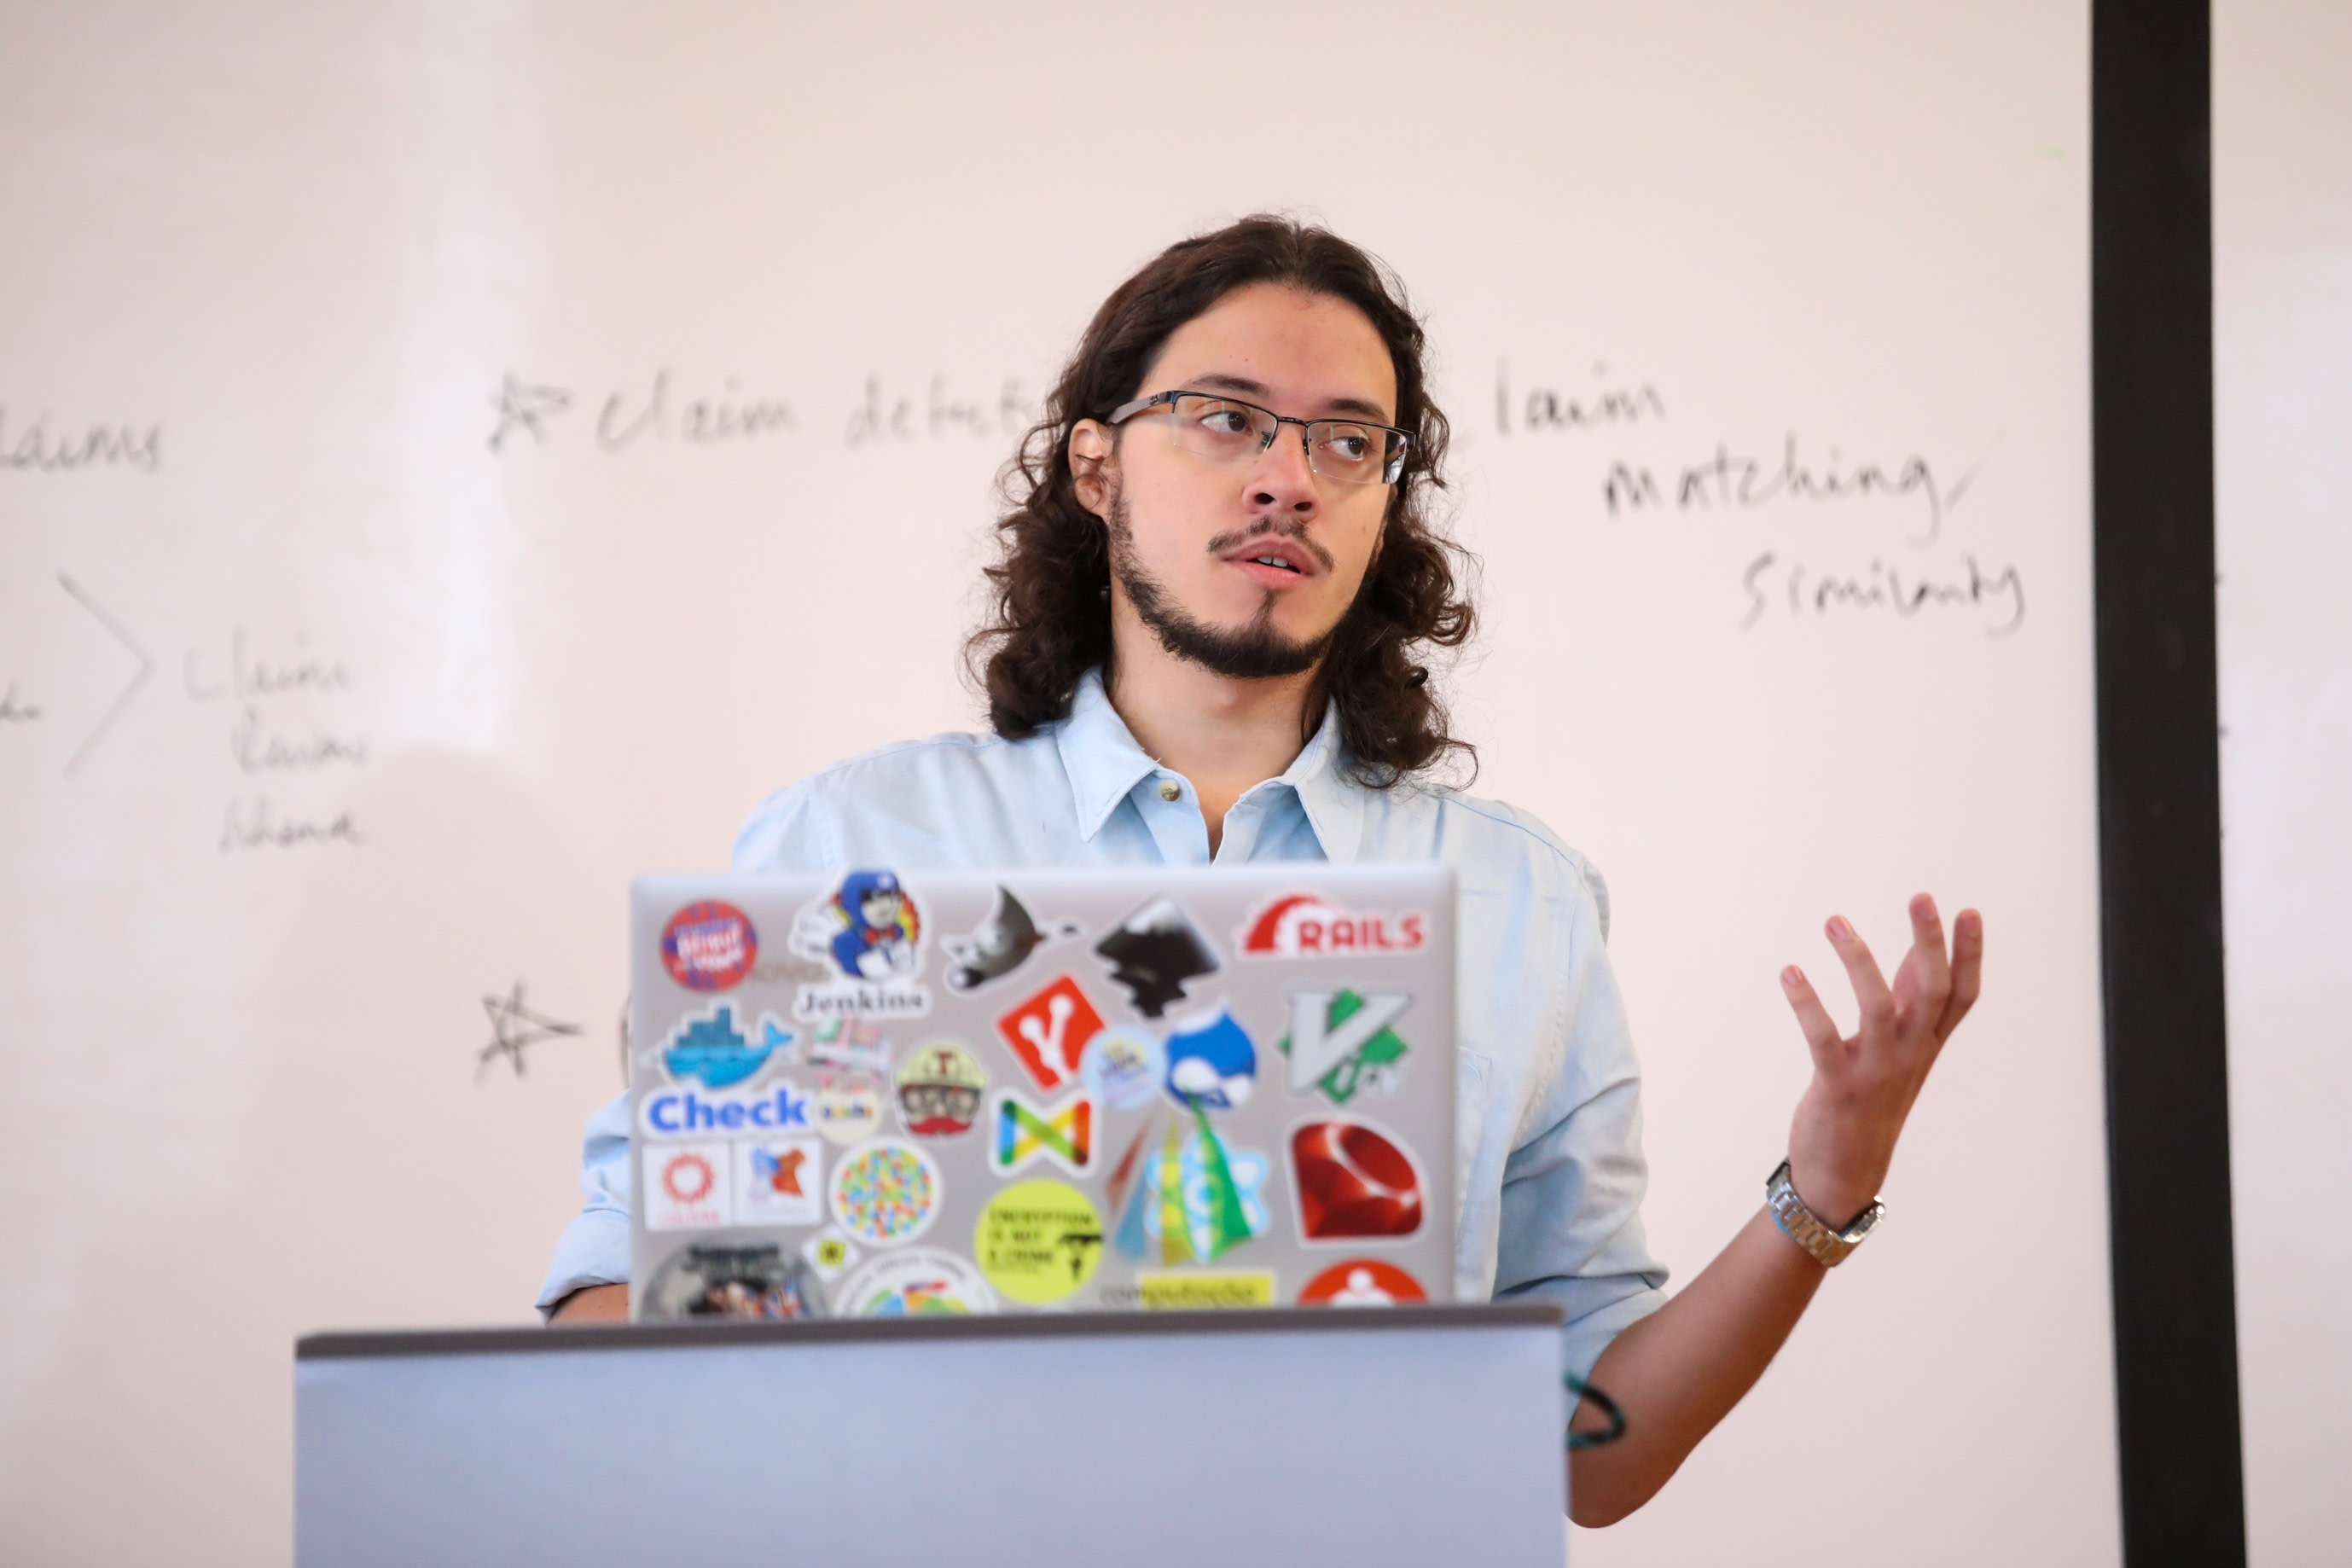 Caio Almeida presenting at Tech & Check 2019 in Duke University. Image via the DeWitt Wallace Center for Media and Democracy, and photo by Colin Huth.